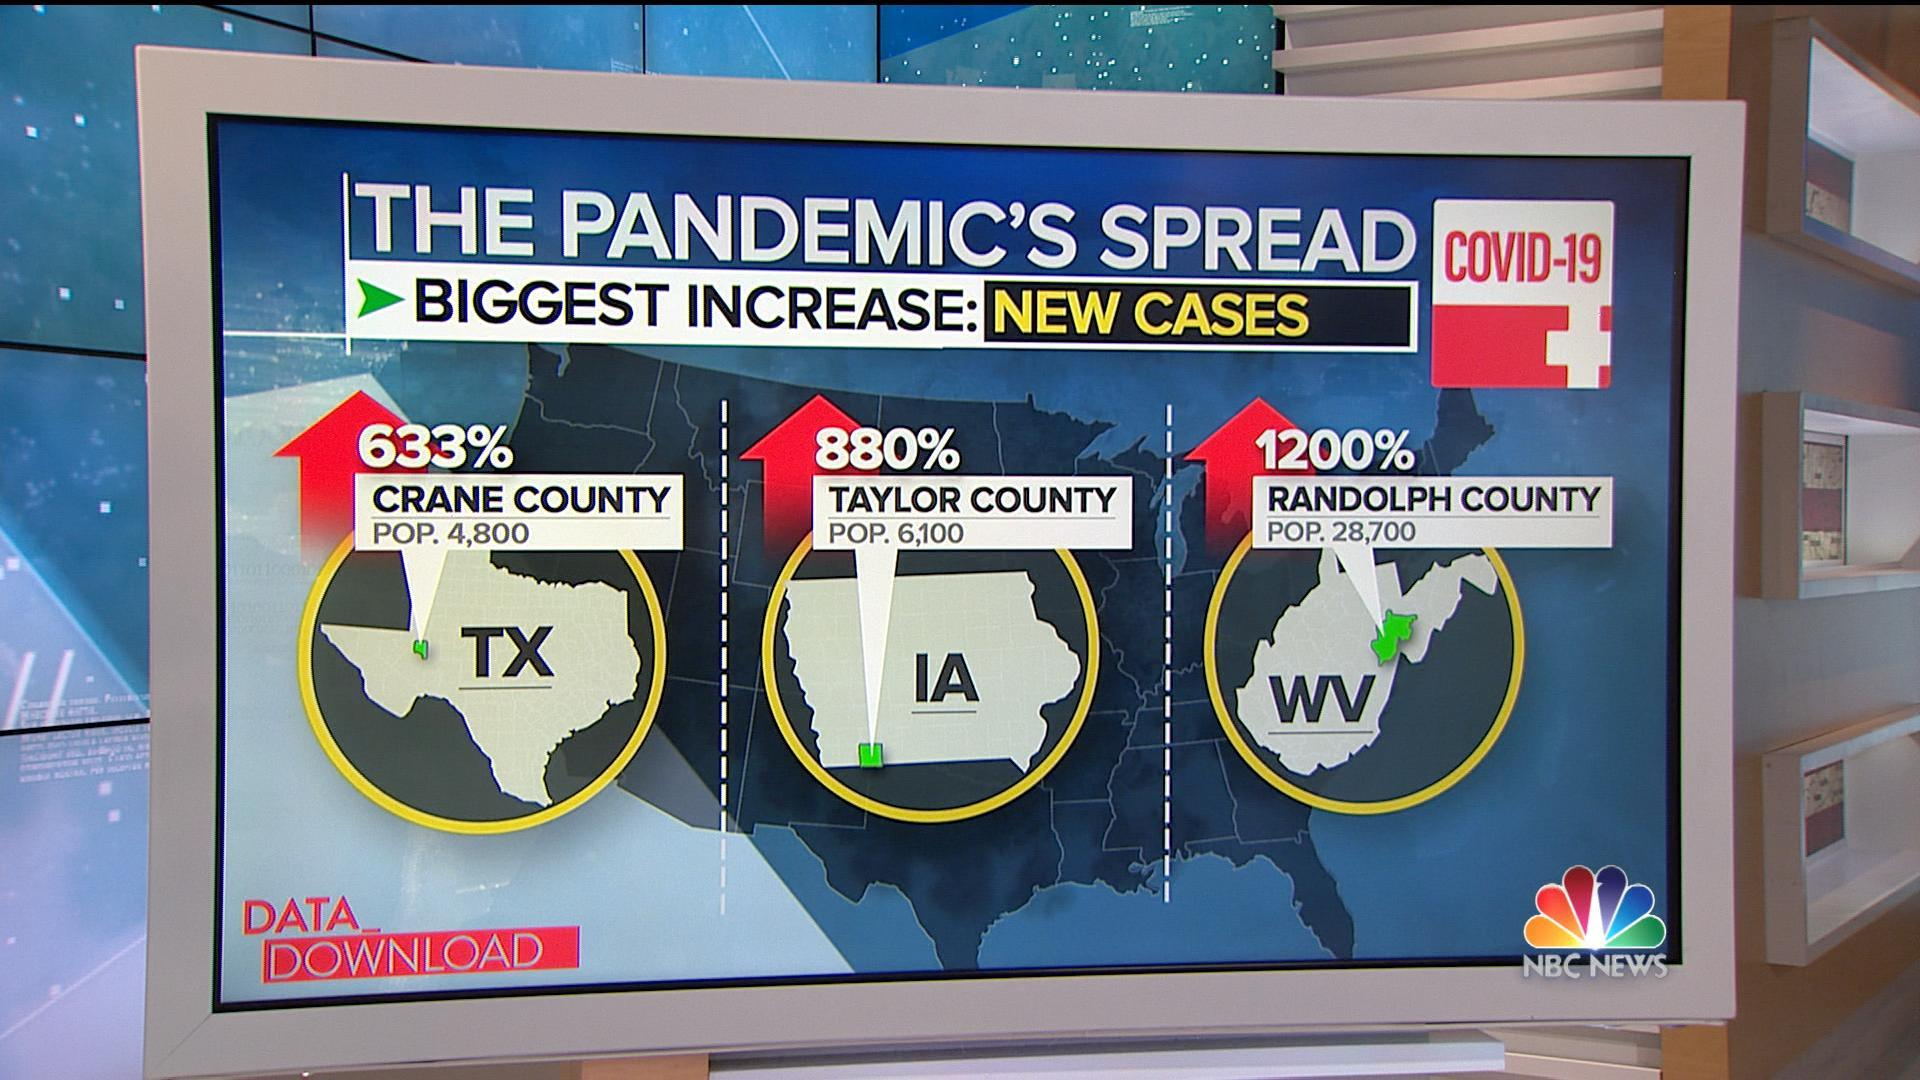 As country heals, pandemic sweeps through rural counties